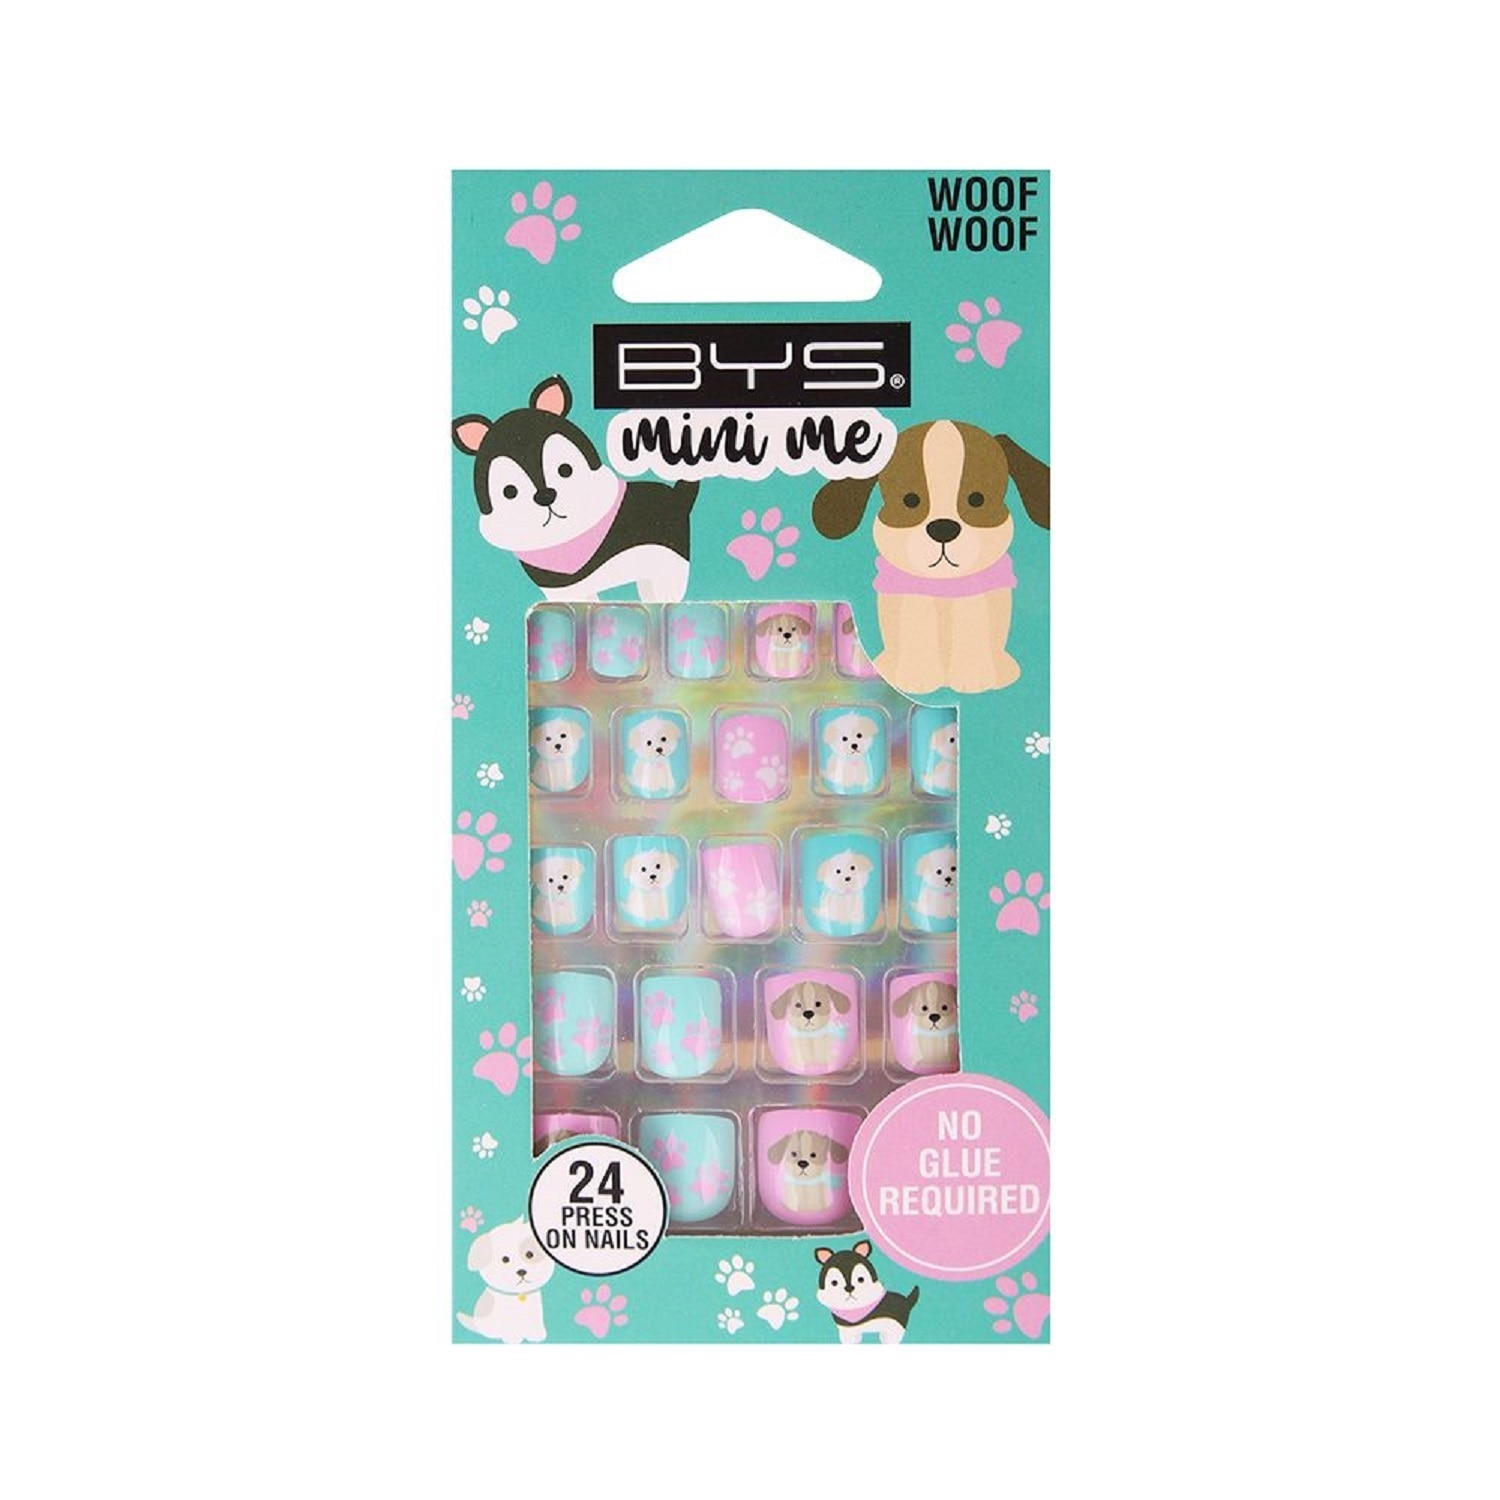 BYSMini Me 24 Pre-Glued Nails Woof Woof,Nail Polish and AccessoriesBABYDOVE1FTY1